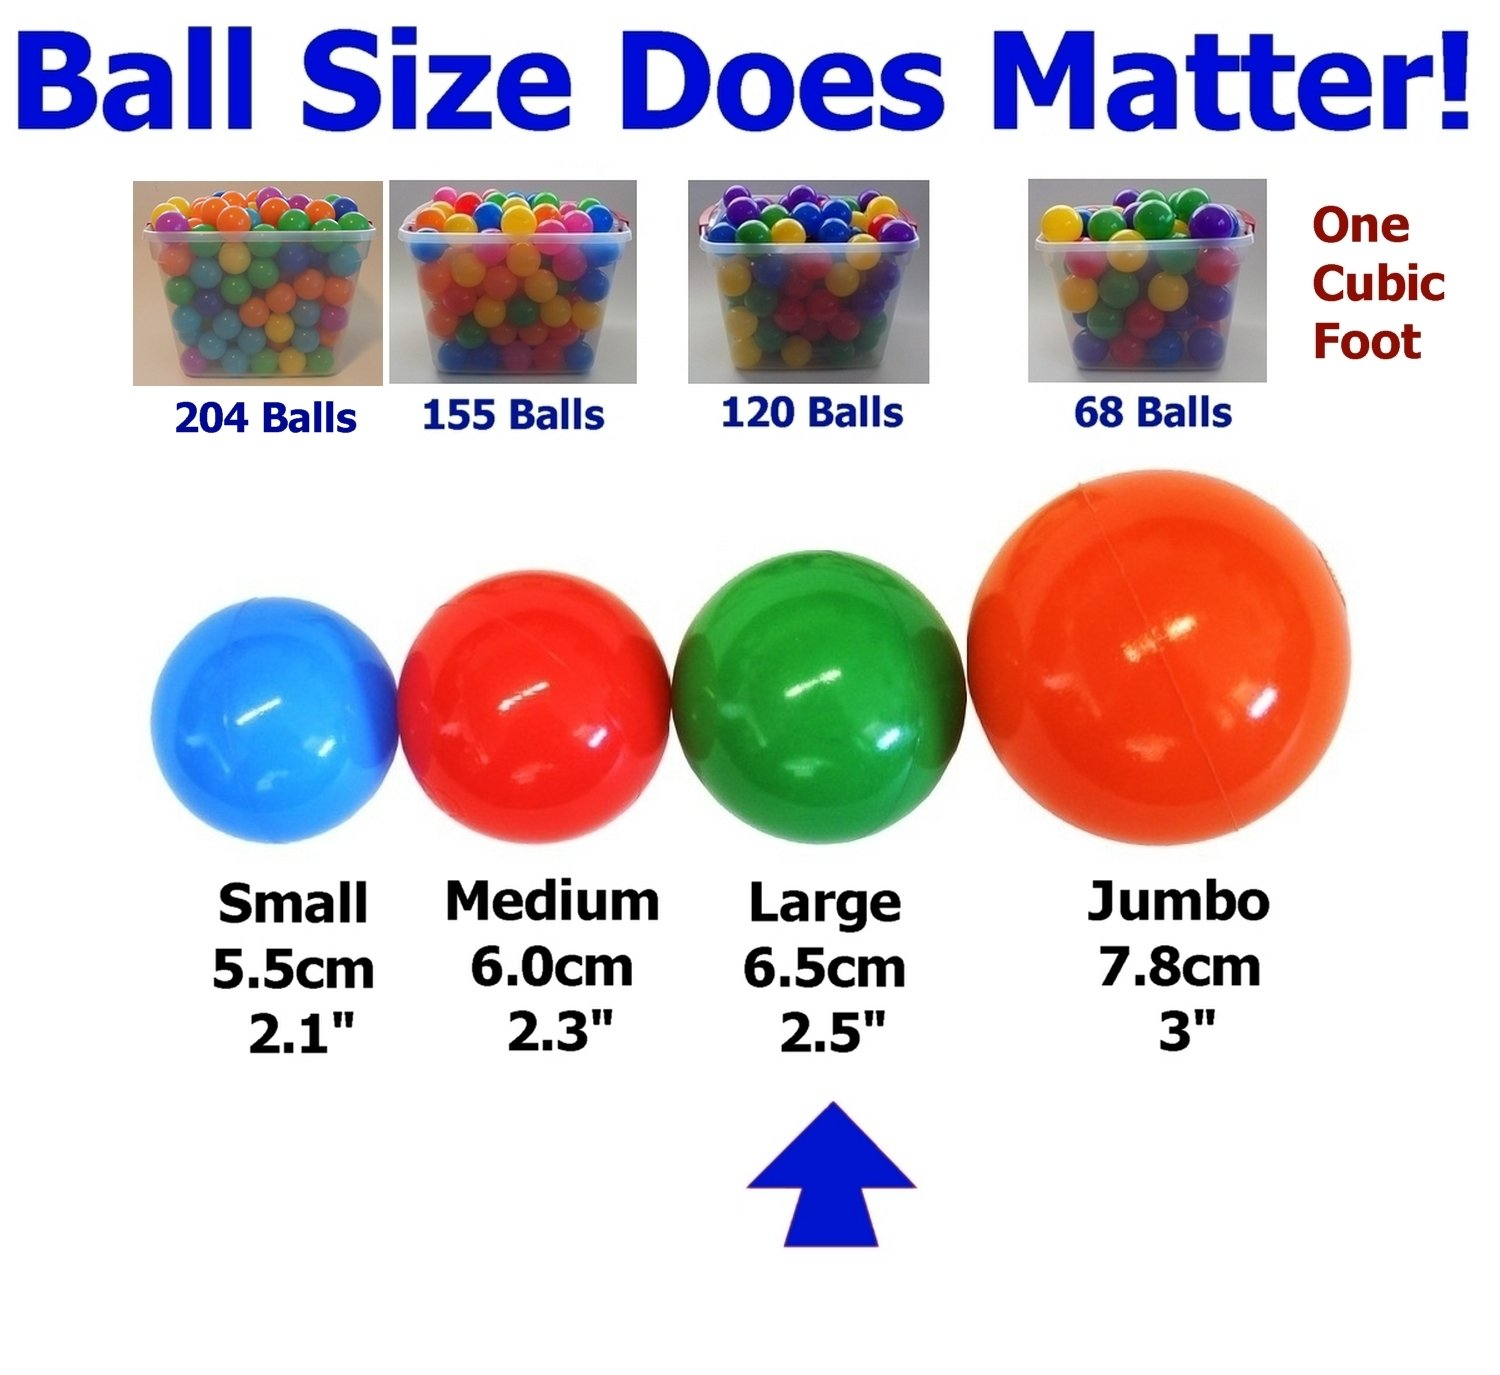 My Balls Pack of 500 Large 2.5'' 65mm Ball Pit Balls in 5 Bright Colors - Crush-Proof Air-Filled; Phthalate Free; BPA Free; Non-Toxic; Non-PVC; Non-Recycled Plastic by My Balls by CMS (Image #2)